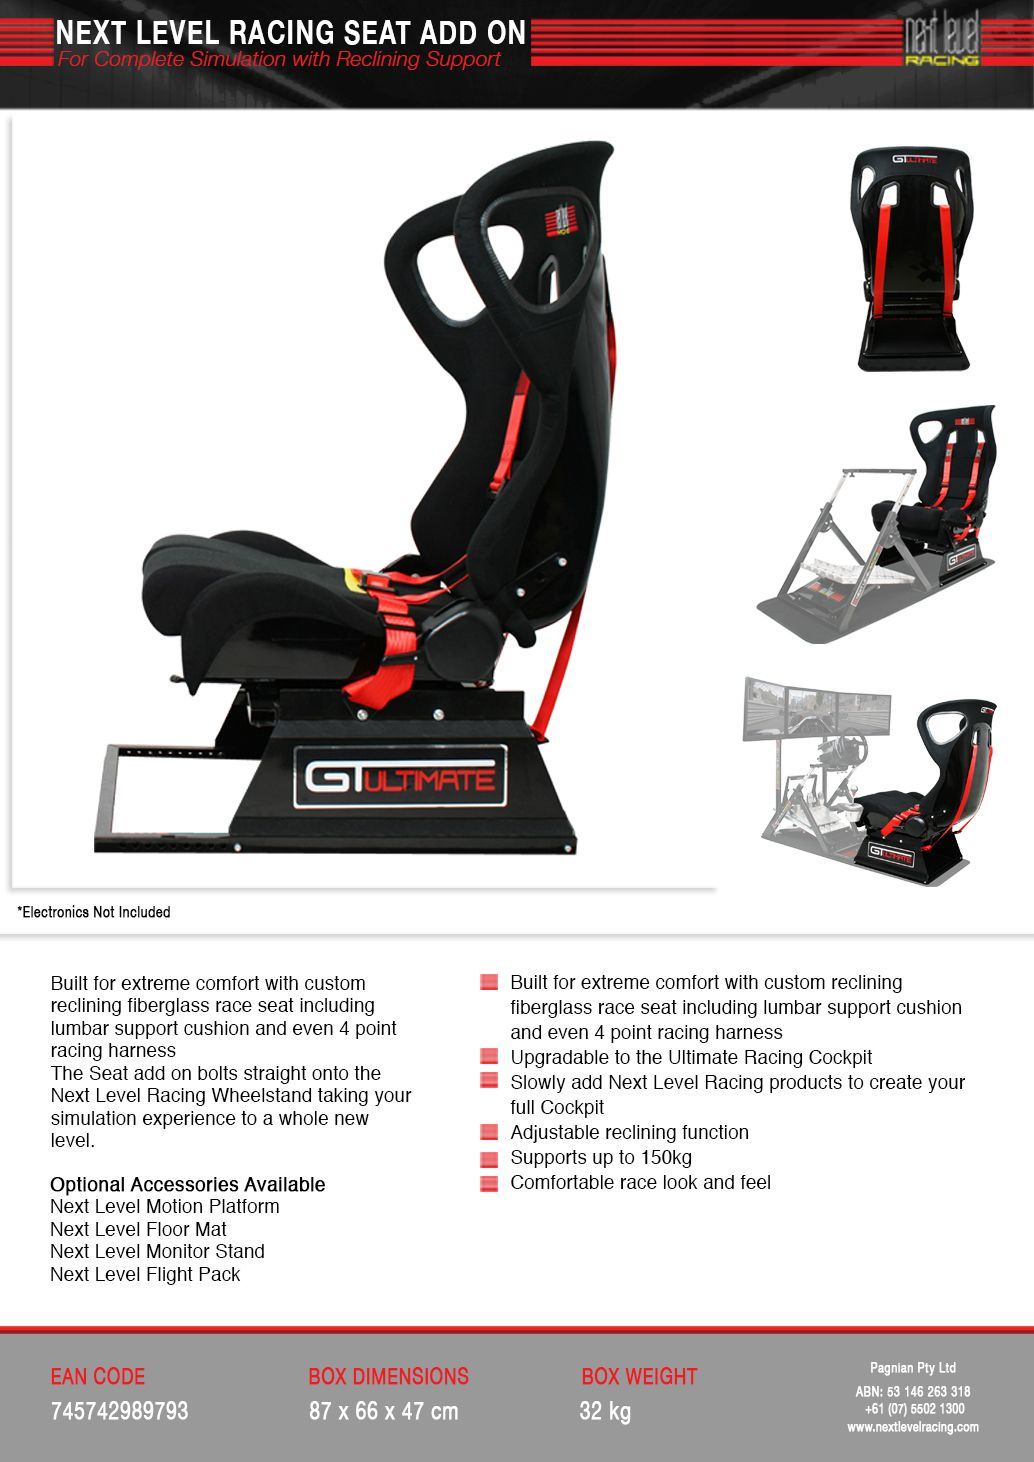 Next Level Racing - Seat Add On | Nordic Game Supply